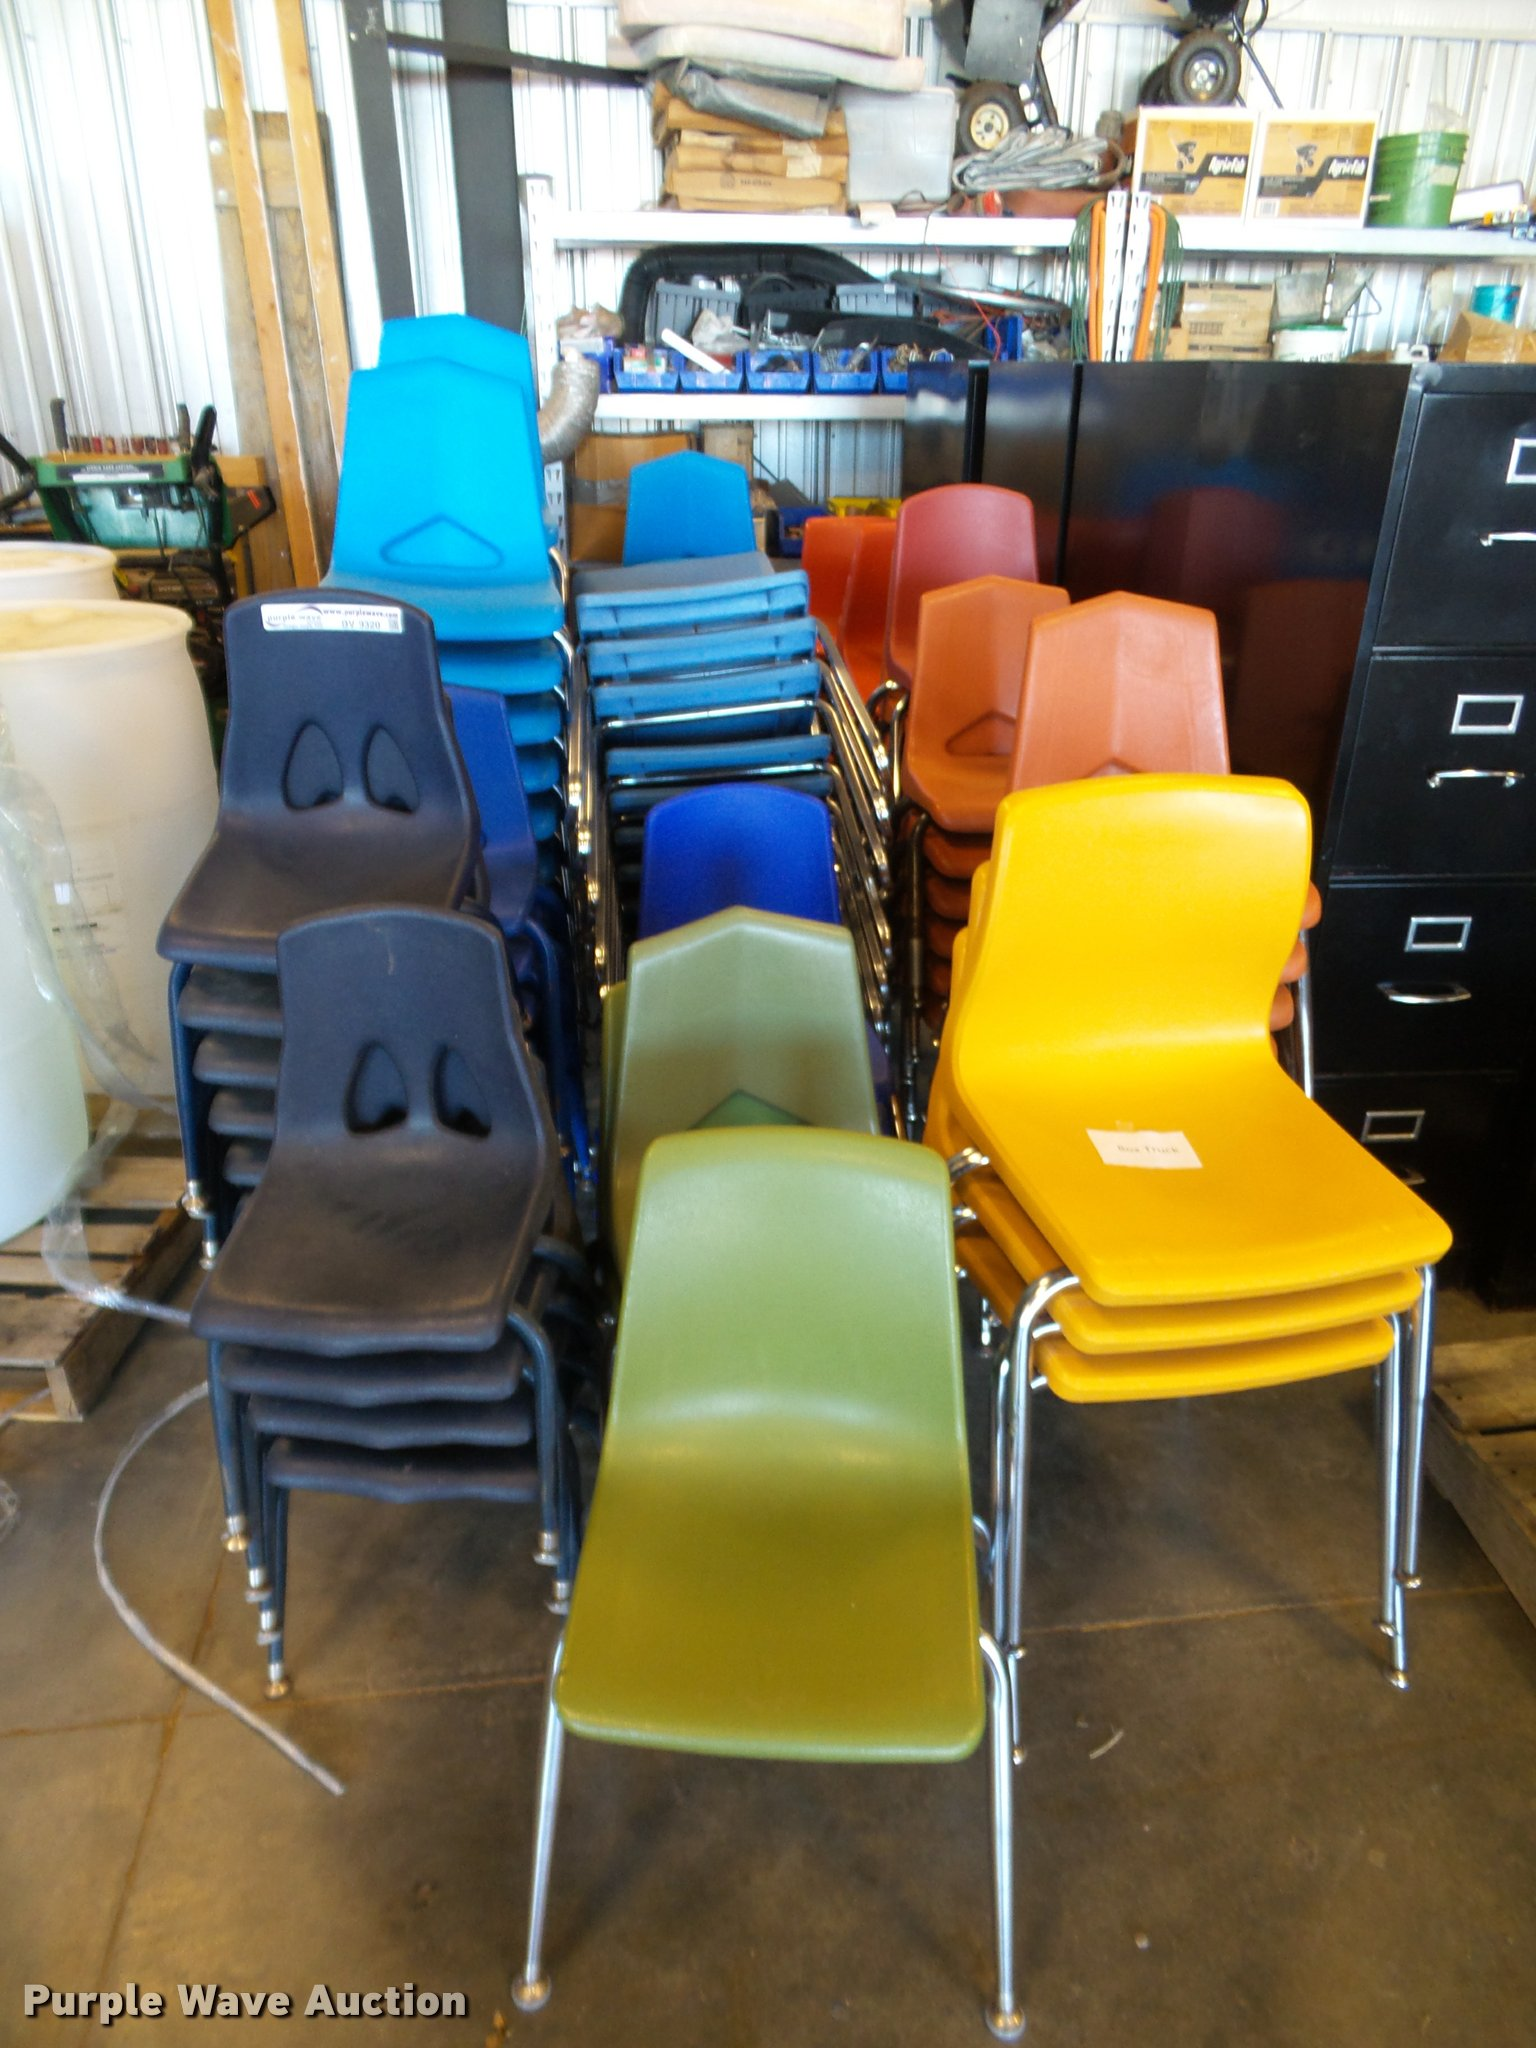 Approximately 100 preschool chairs Item BV9320